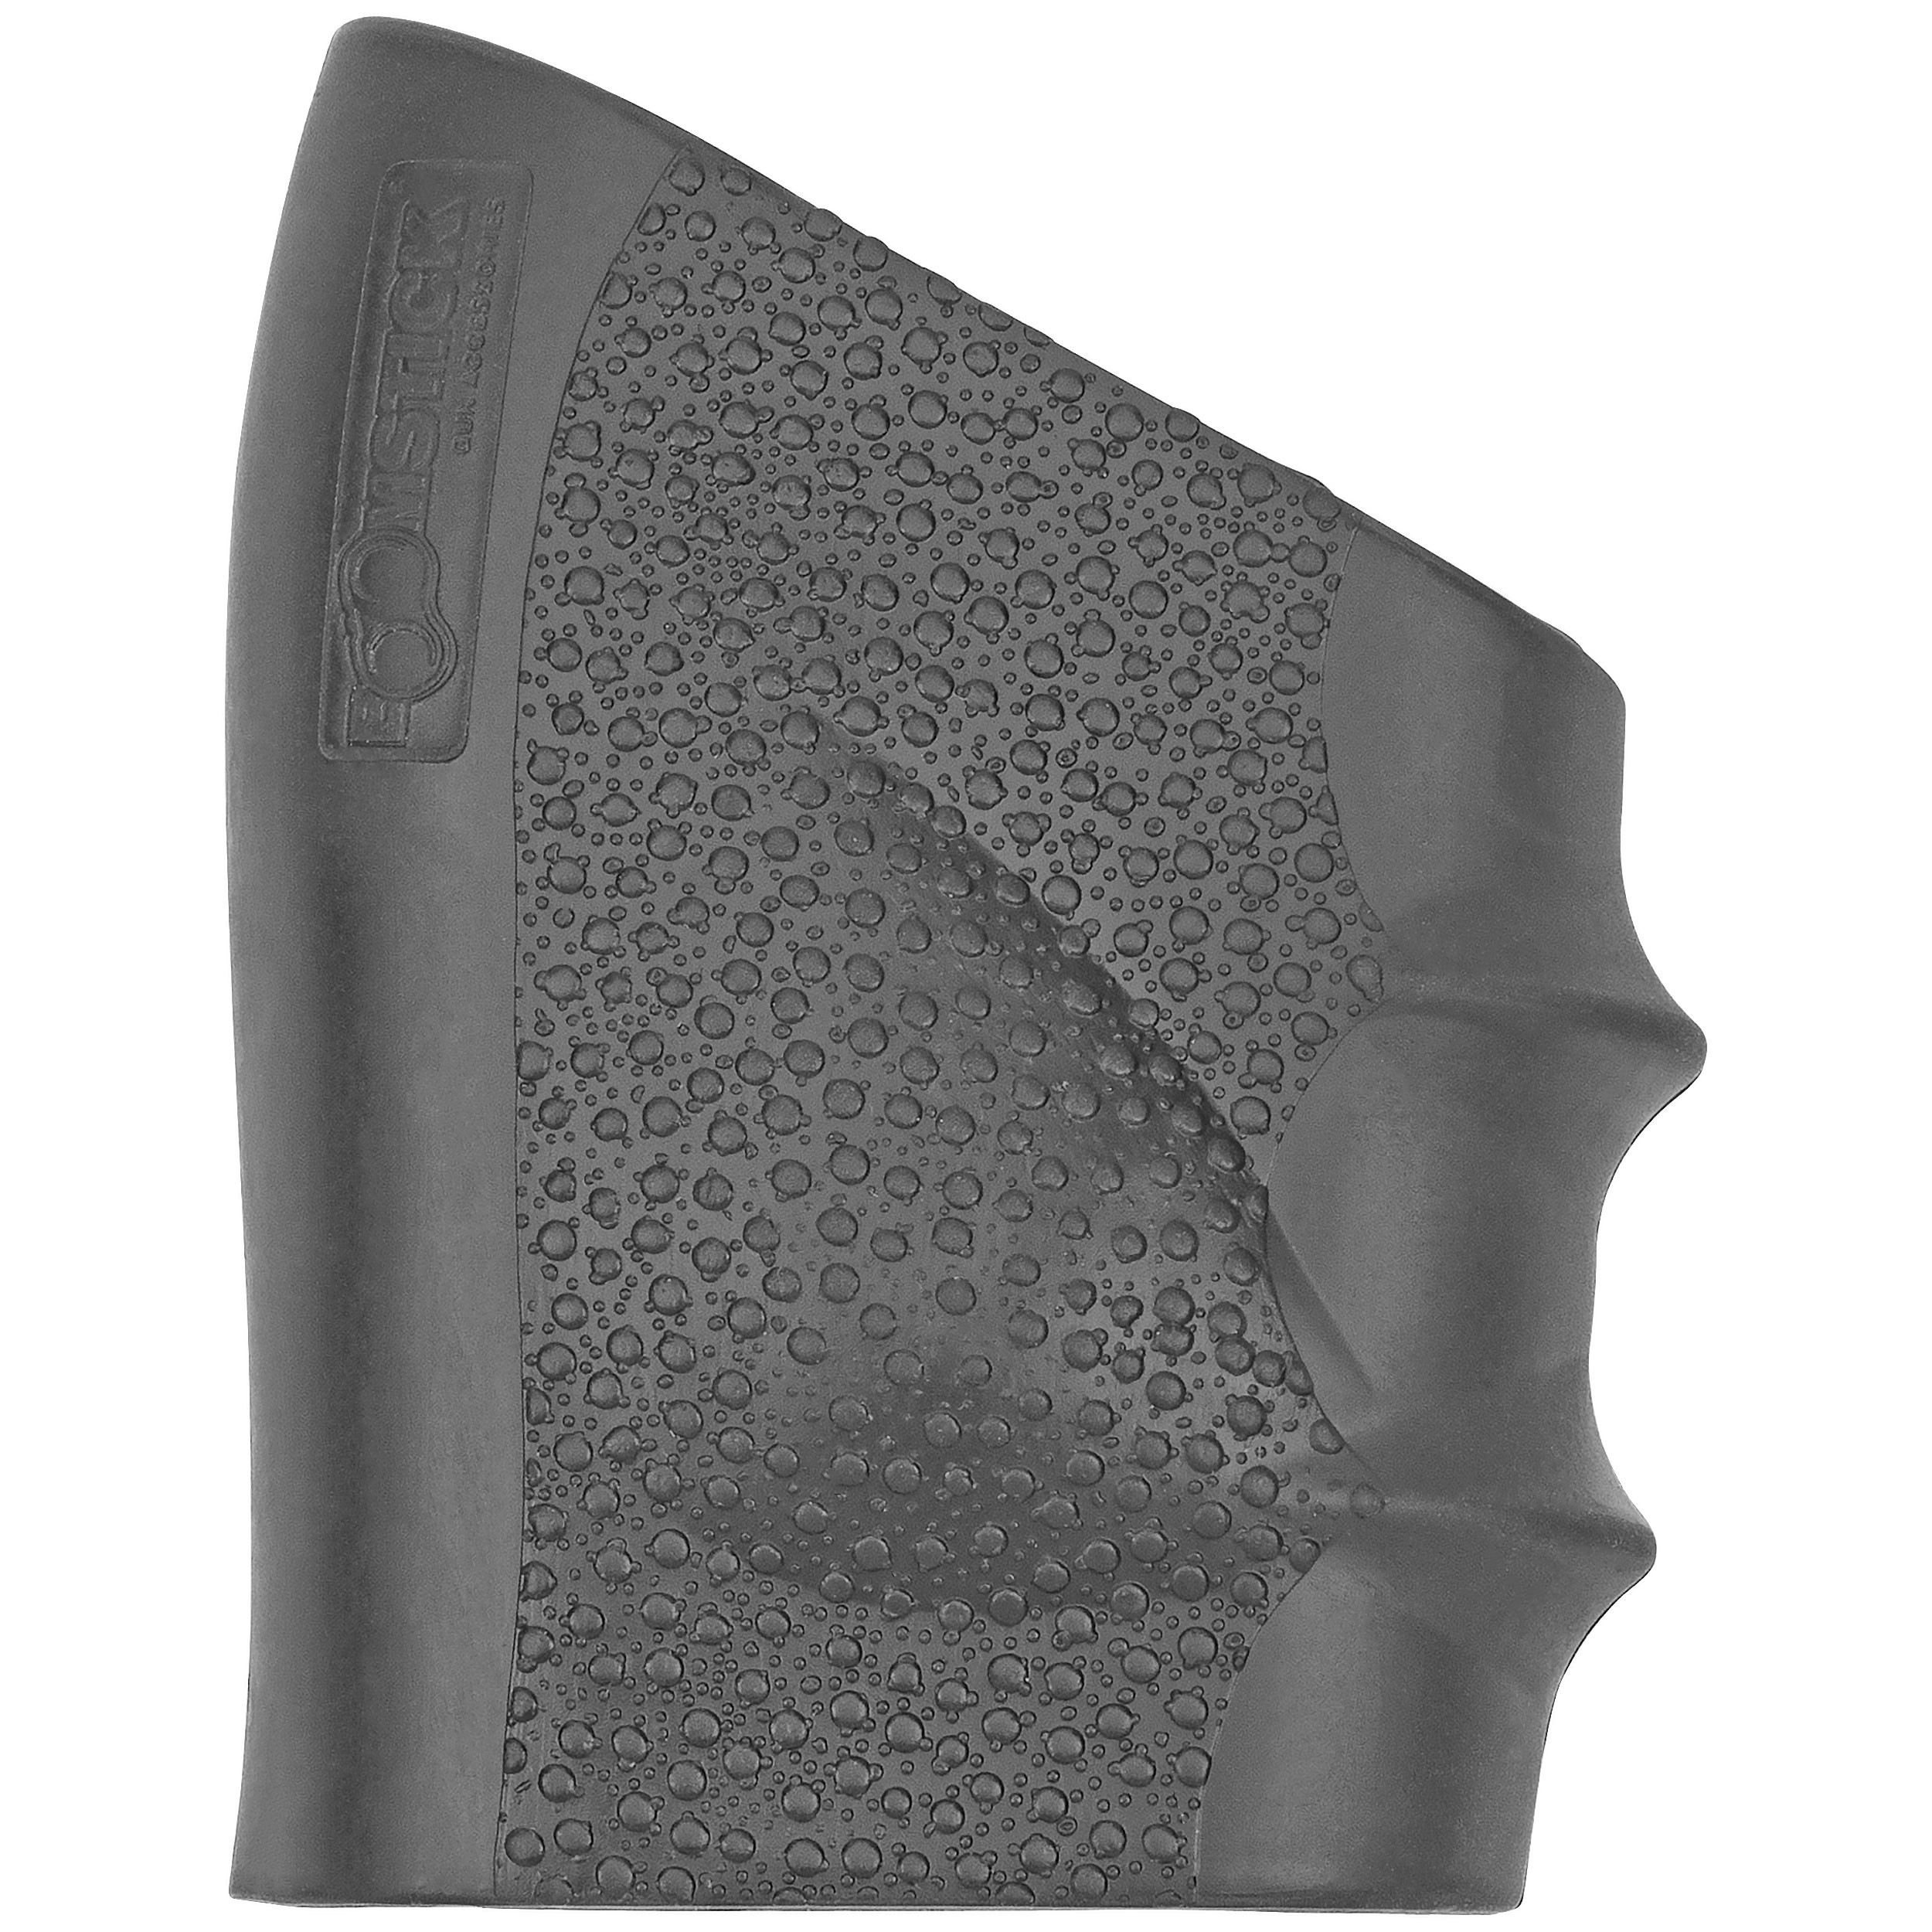 BOOMSTICK Universal Grip Glove Sleeve Fits Most Full Size Pistols Glock SW Sigma Sig Sauer Ruger, Black